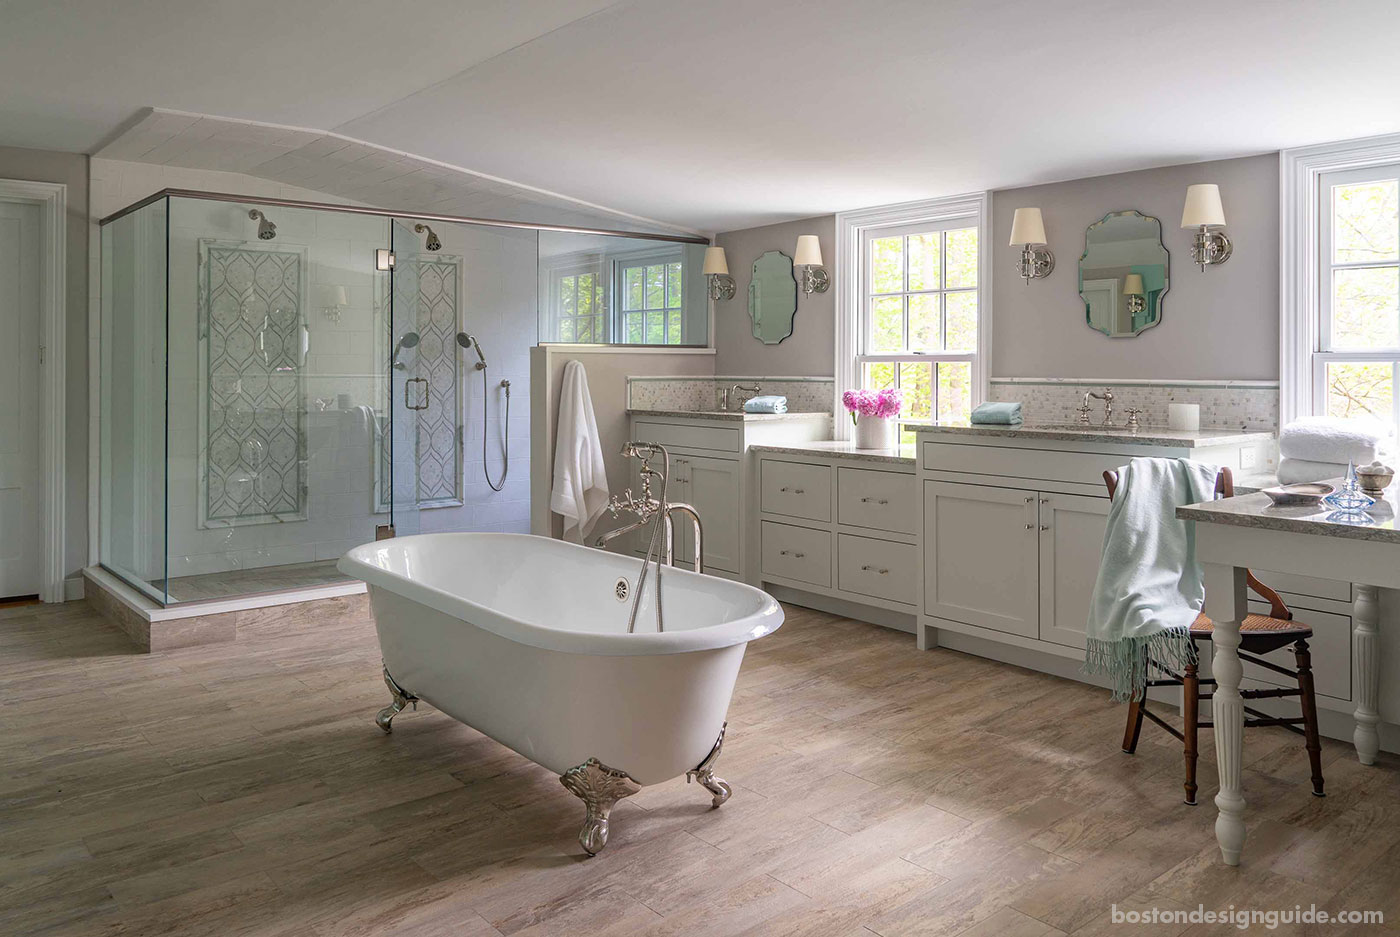 Master bathroom for a high-end Boston area historic renovation by Cummings Architects